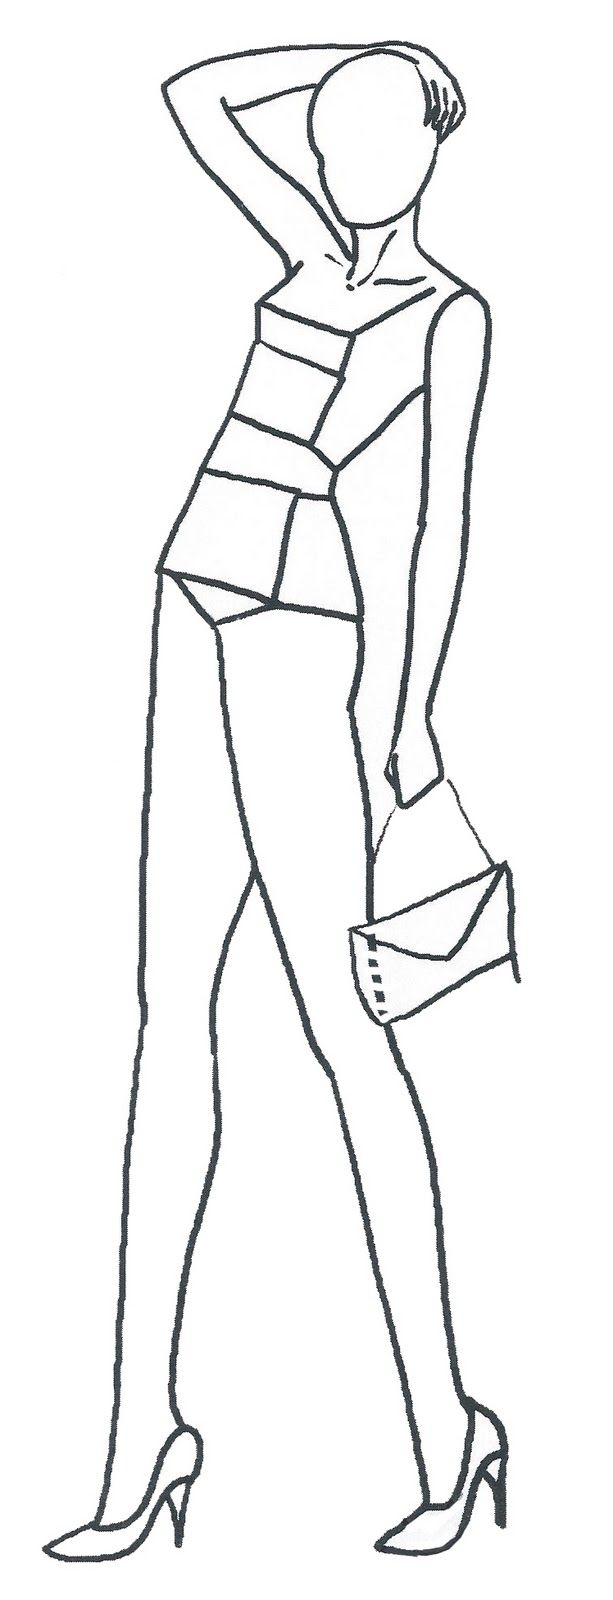 It is an image of Universal Fashion Drawing Templates